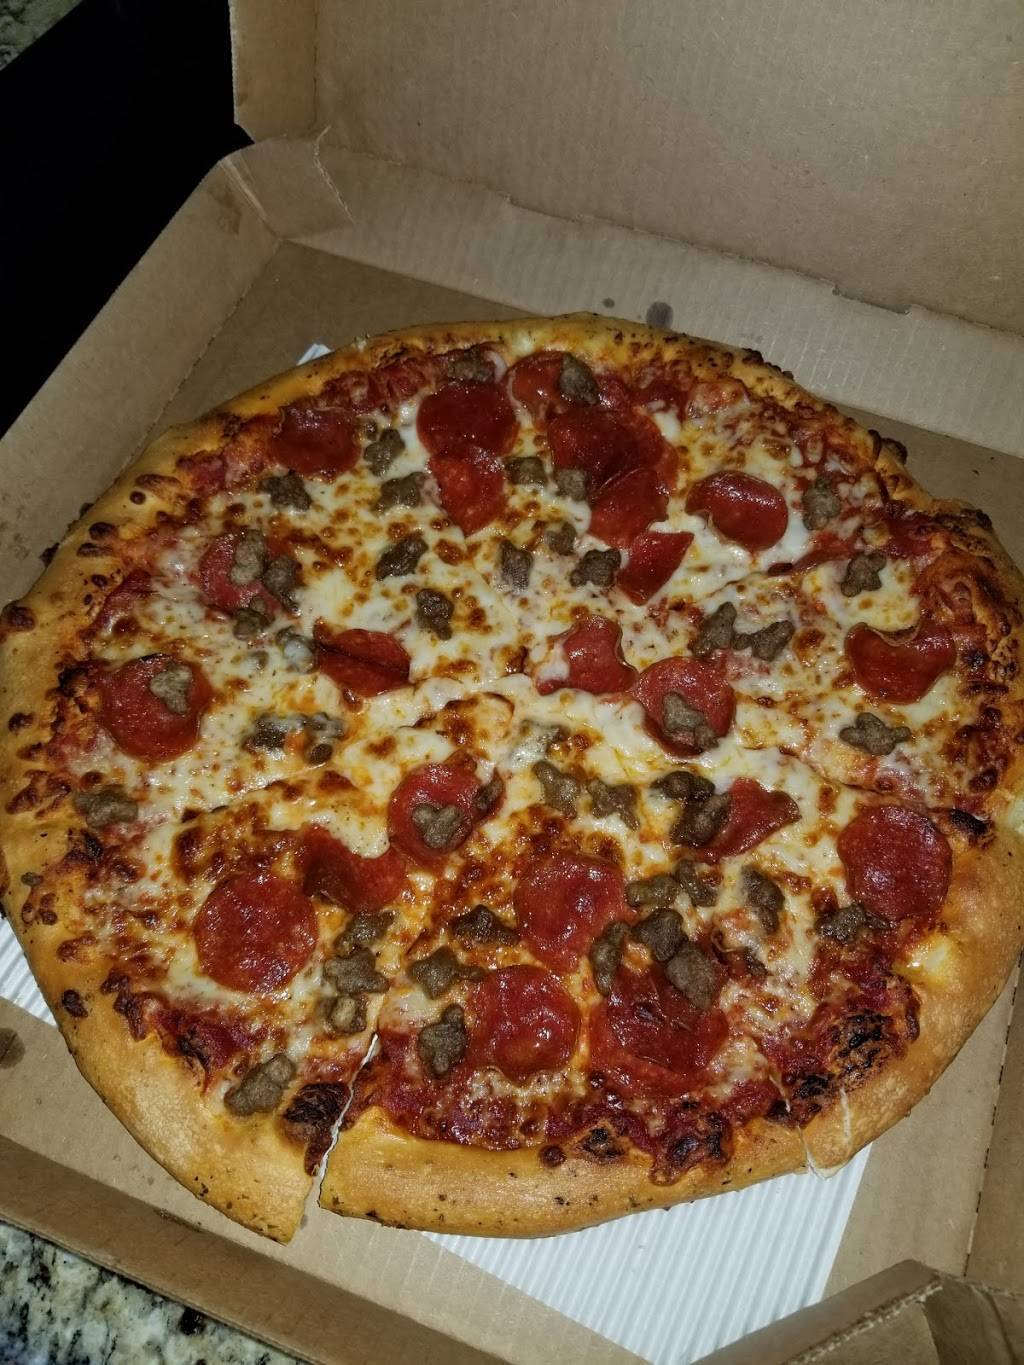 Pizza Hut Meal Takeaway 6015 Fig Garden Dr Fresno Ca 93722 Usa